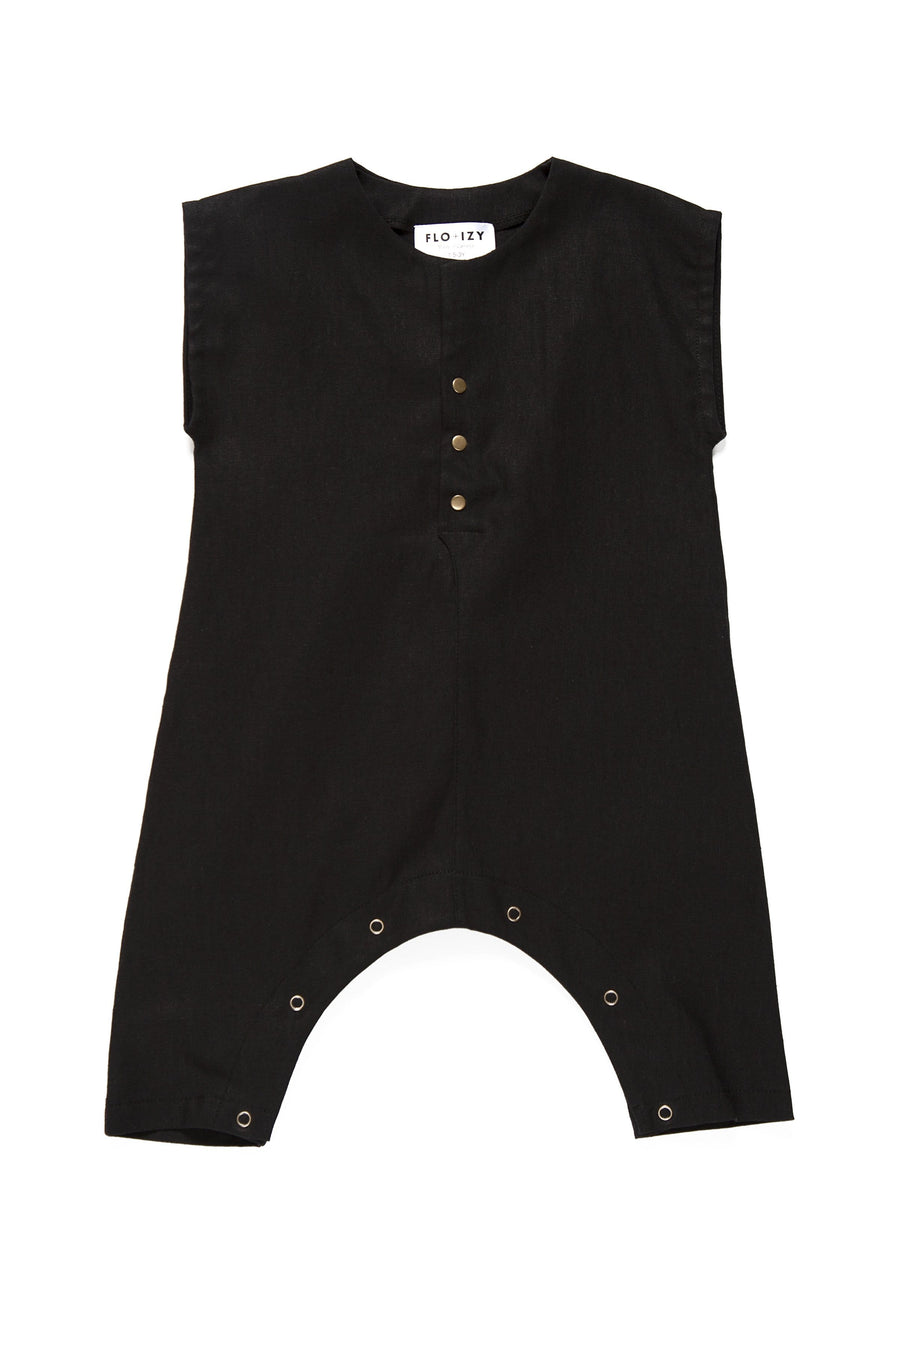 Henley Coveralls (Child) - Flo + Izy